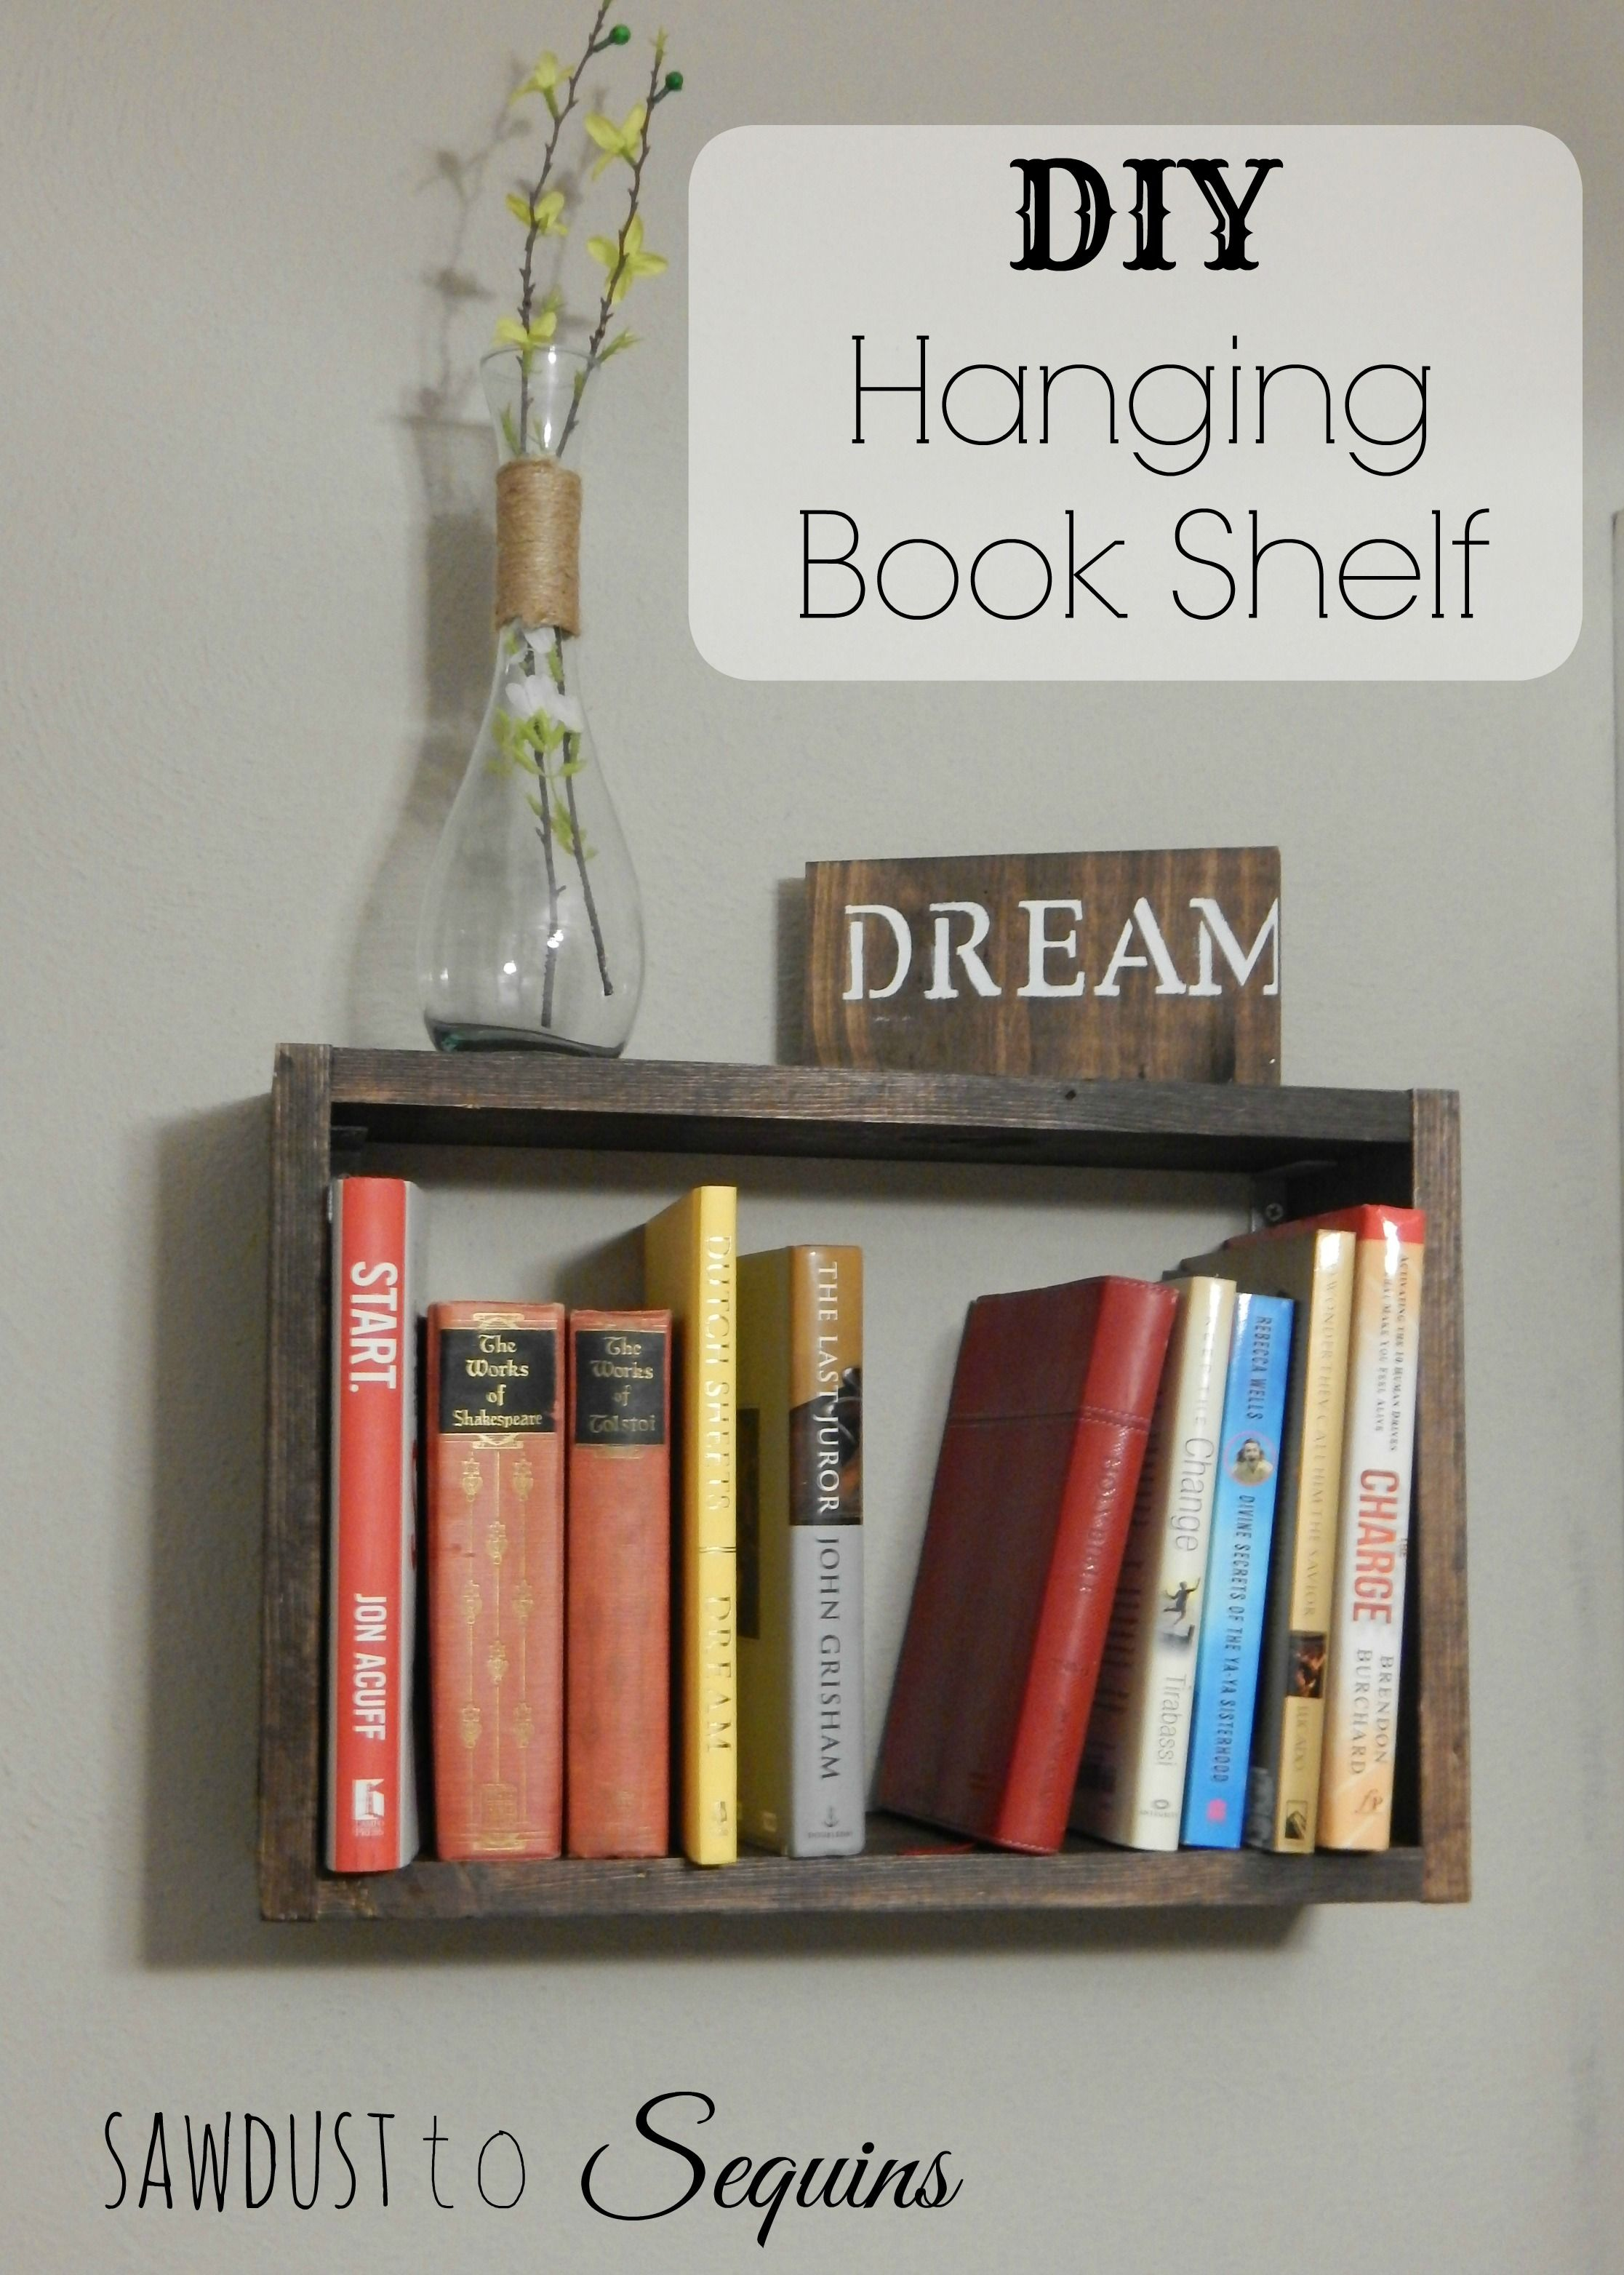 Diy Hanging Book Shelf With Just One Size Board A Few Supplies And